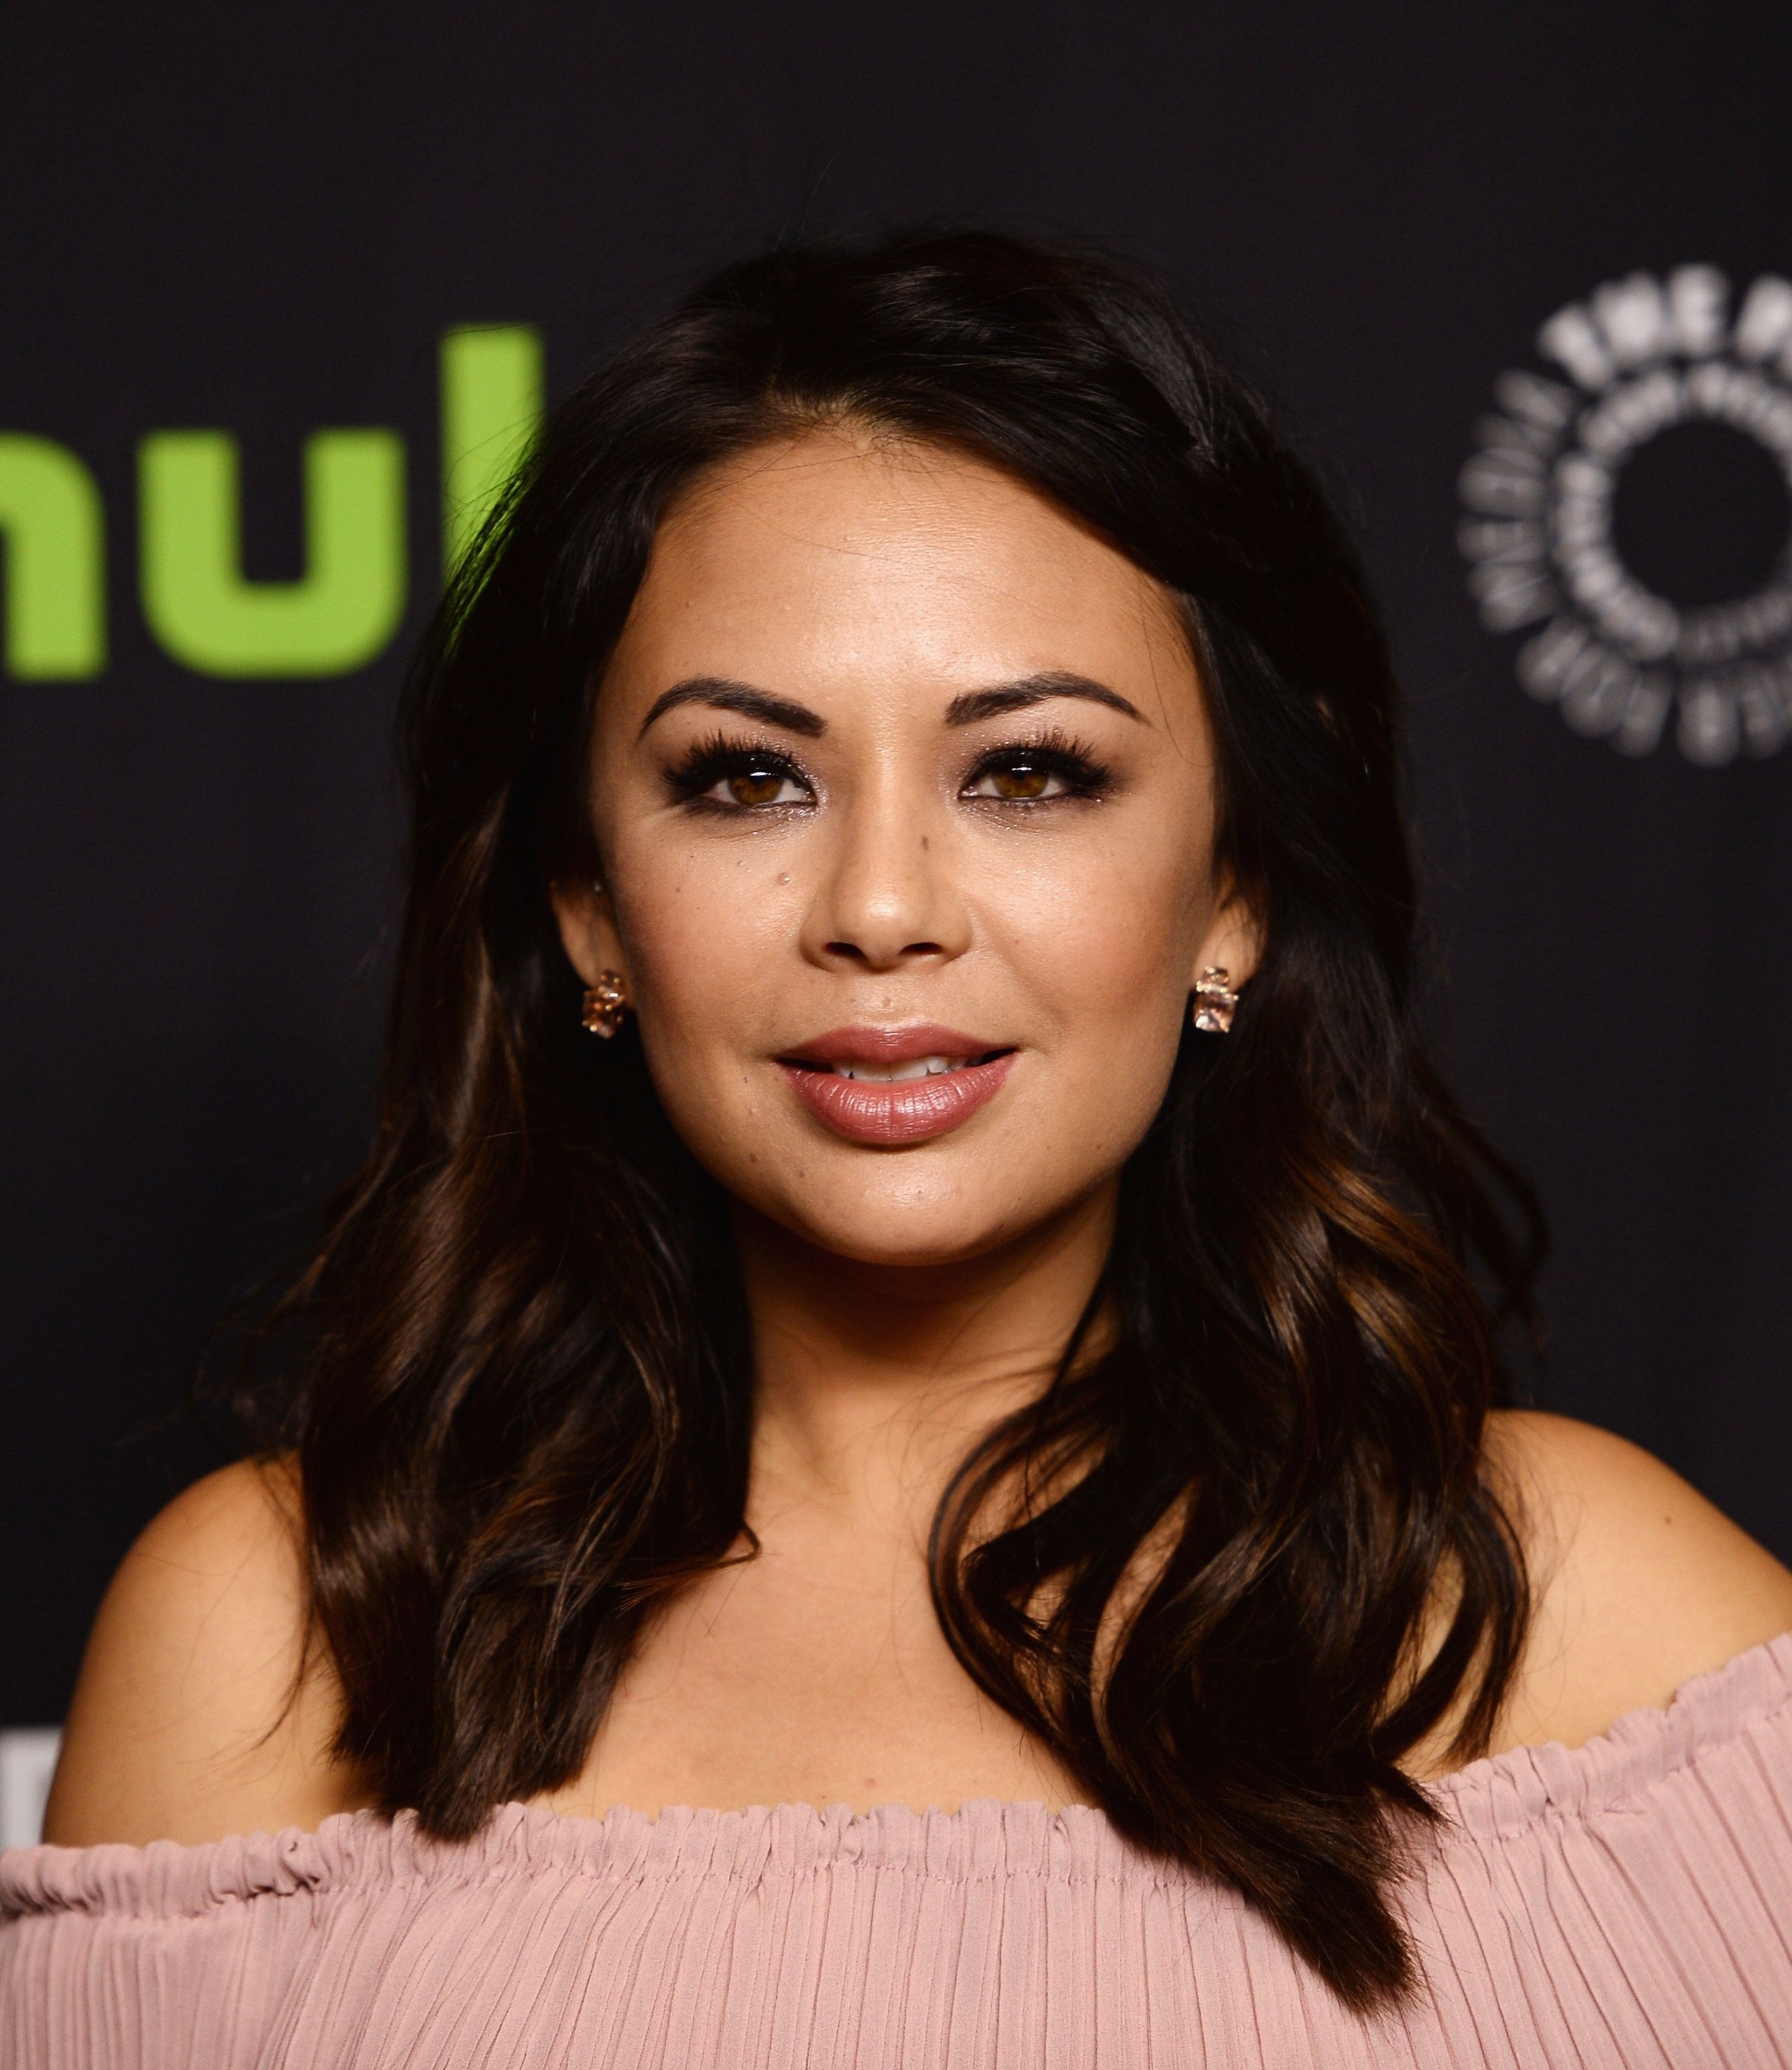 Pretty Little Liars star Janel Parrish is engaged